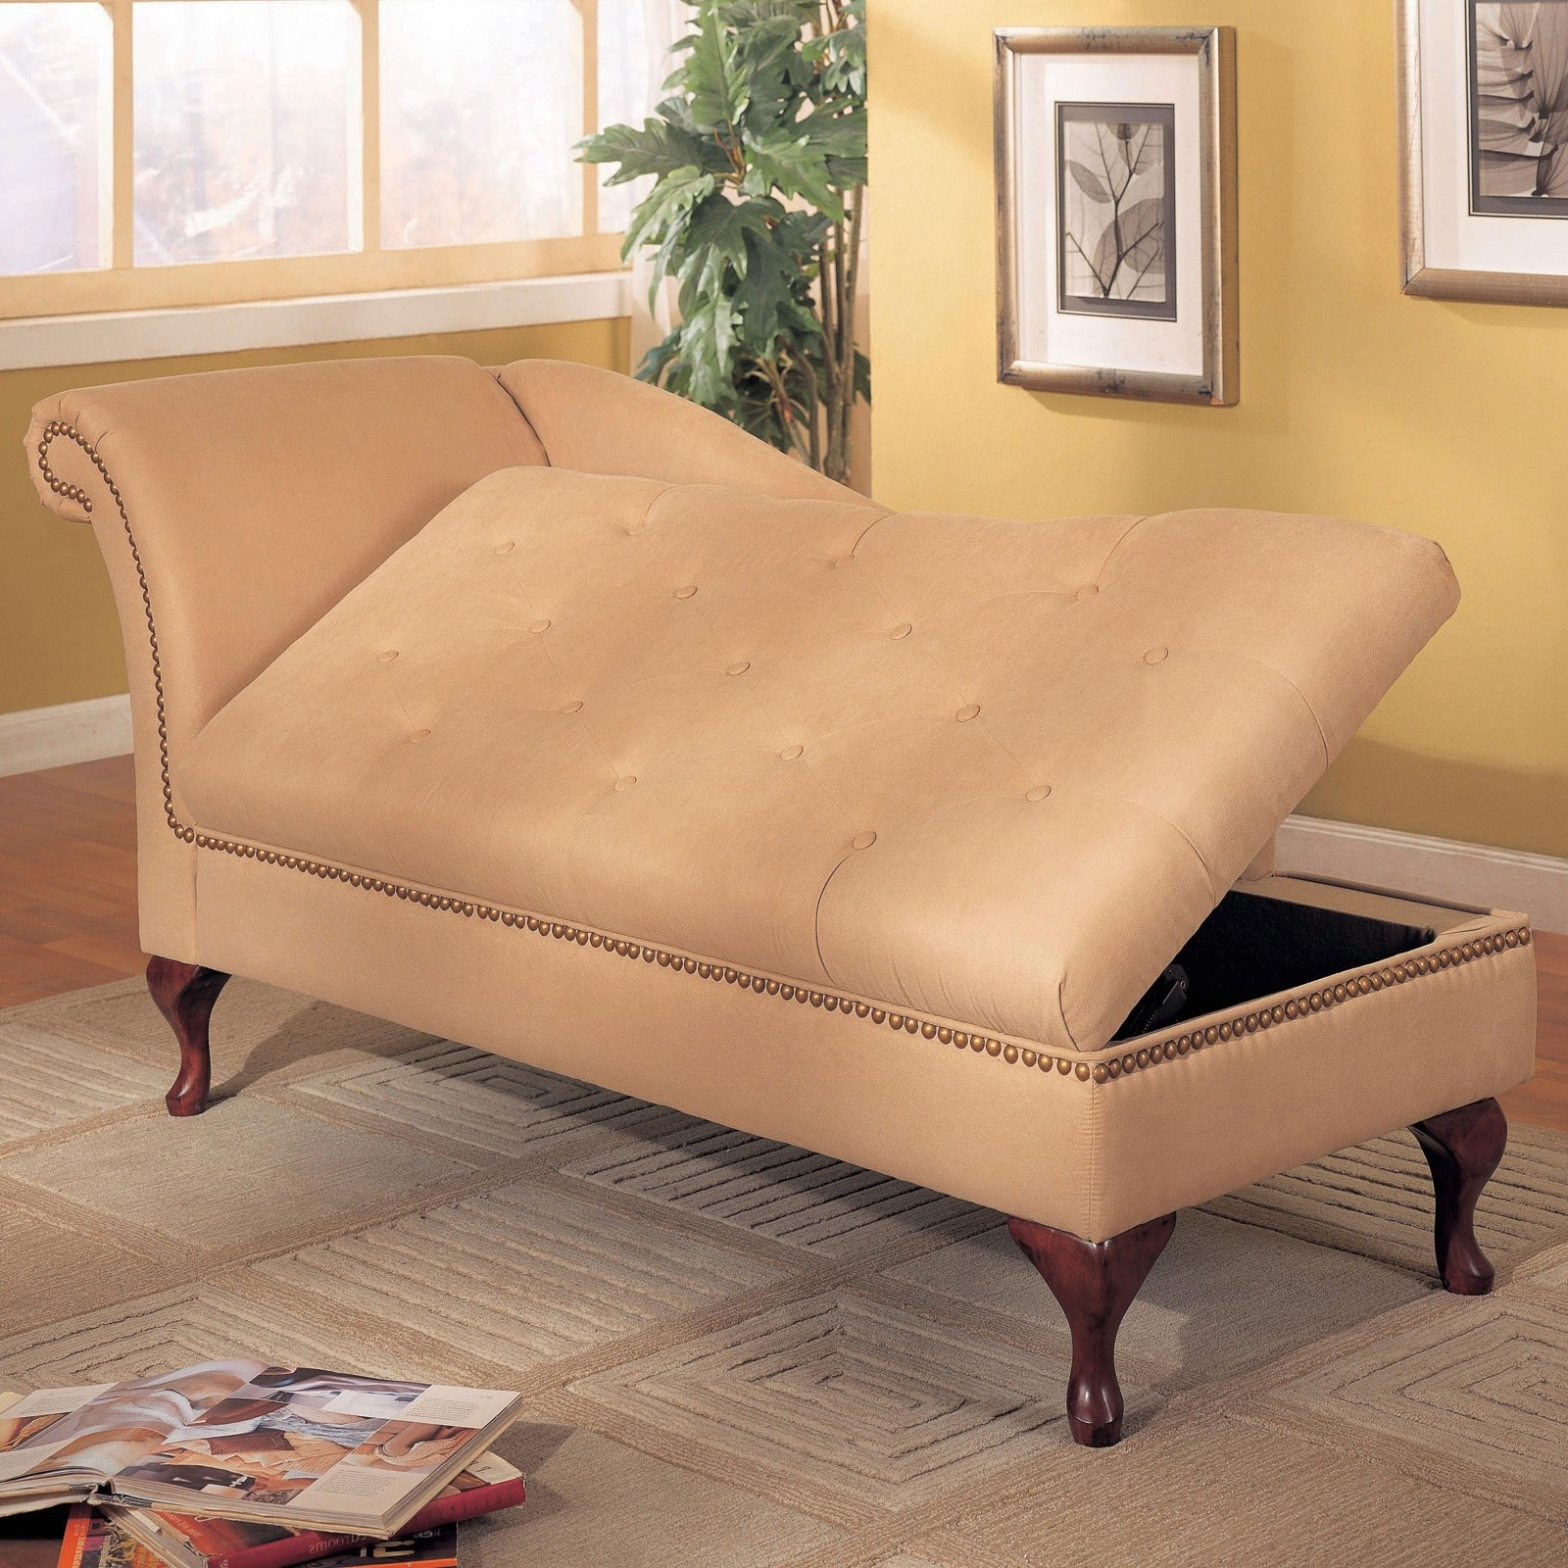 Most Recent Home Decor: Small Bedroom Chaise Lounge Chairs • Lounge Chairs With Narrow Chaise Lounge Chairs (View 4 of 15)